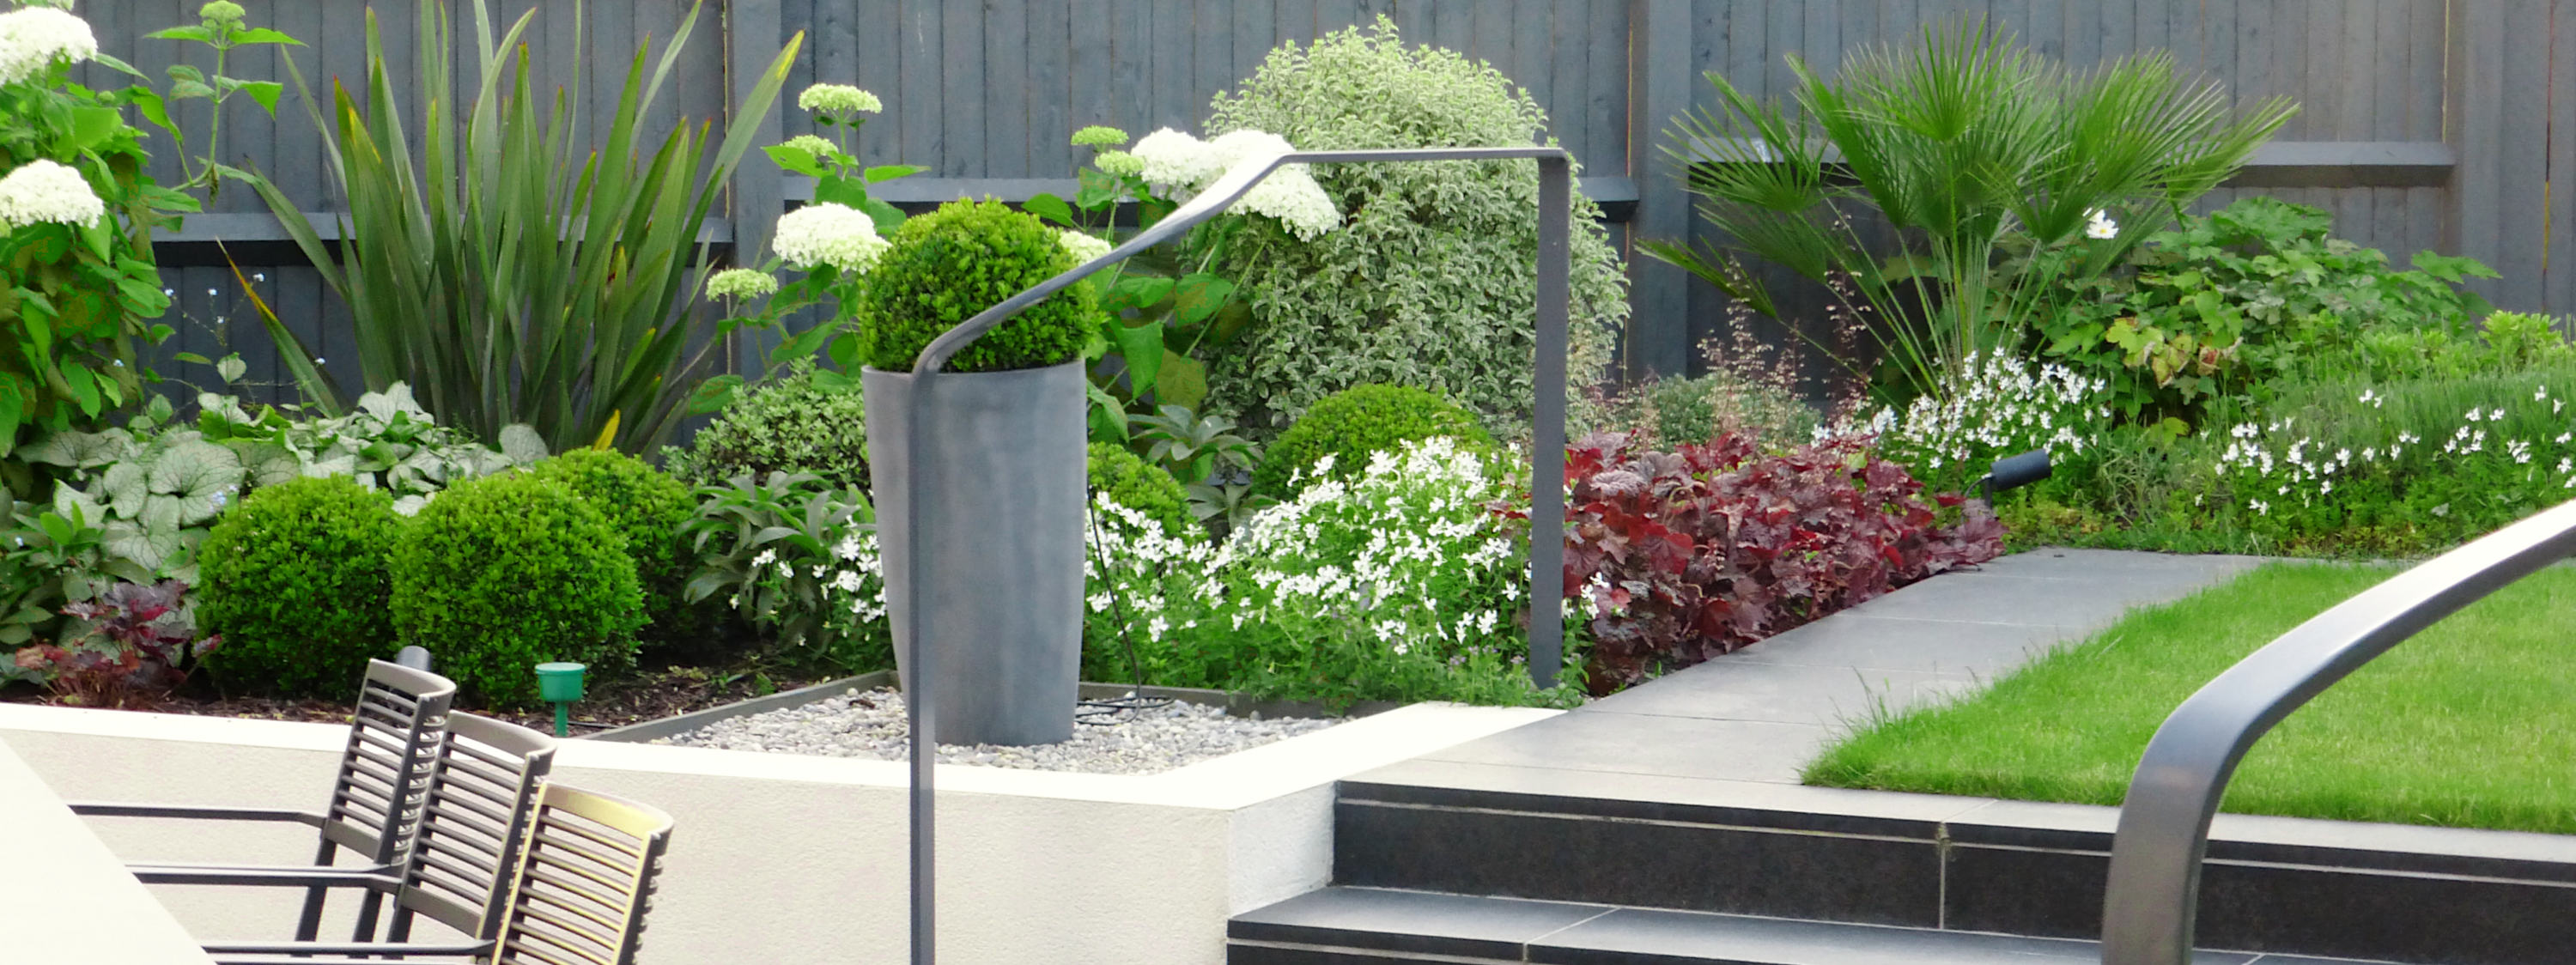 Easy To Care For Low Maintenance Garden Design Londonhampstead